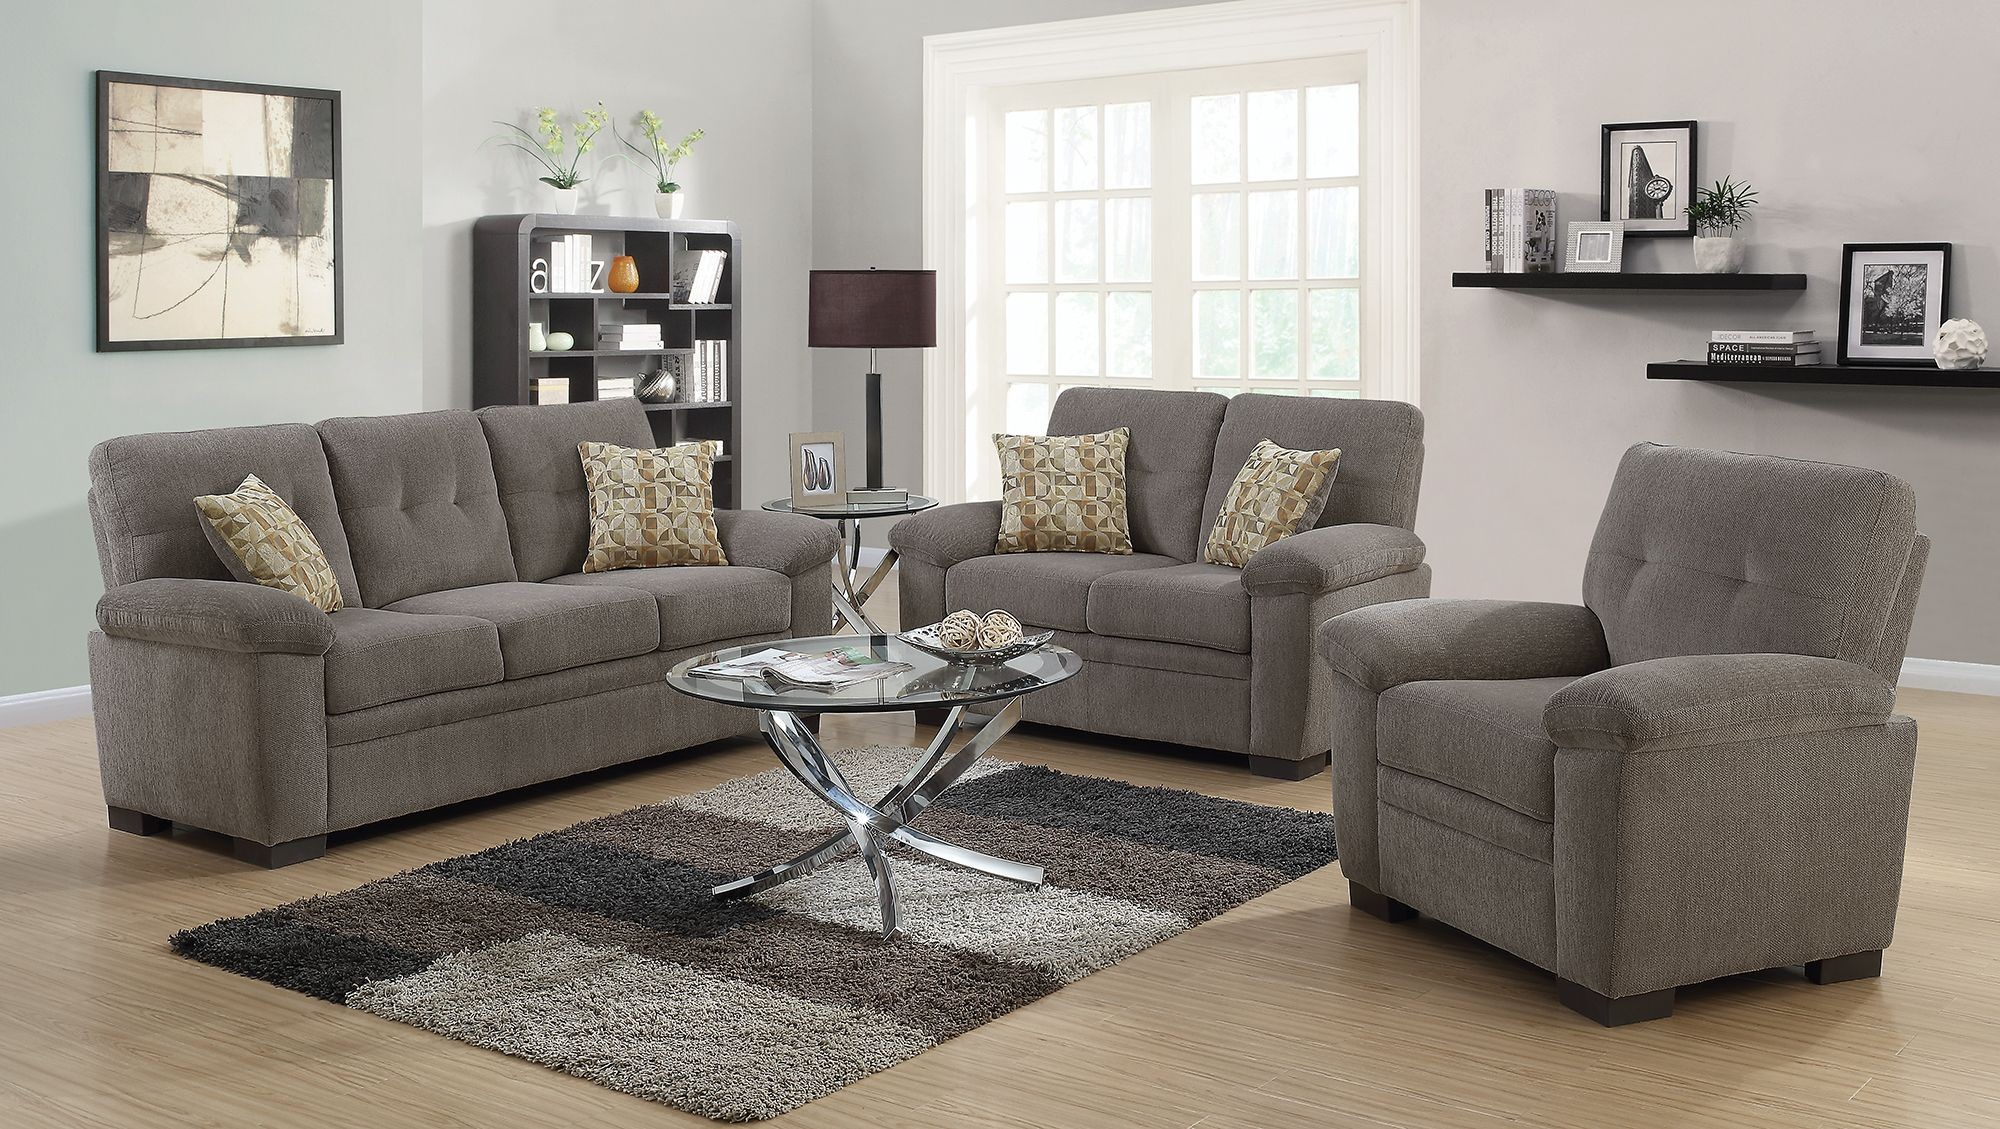 Fairbairn oatmeal living room set 506581 82 coaster for Front room furniture sets